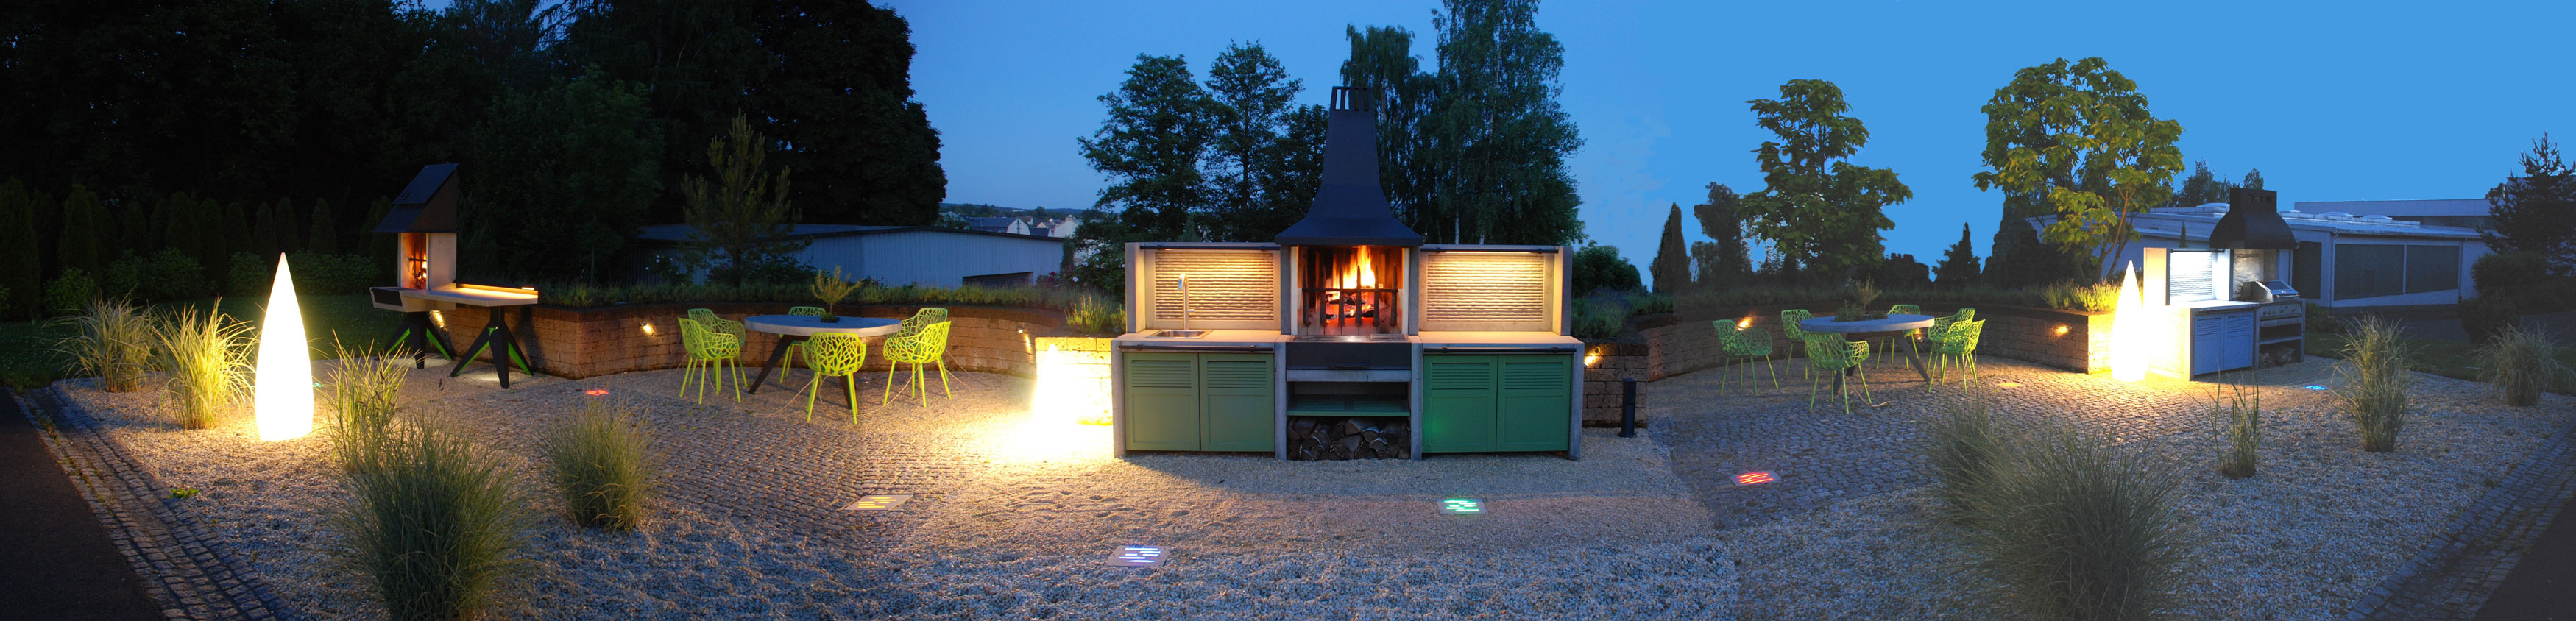 Abendstimmung im Outdoorkuechen Showroom Rehau